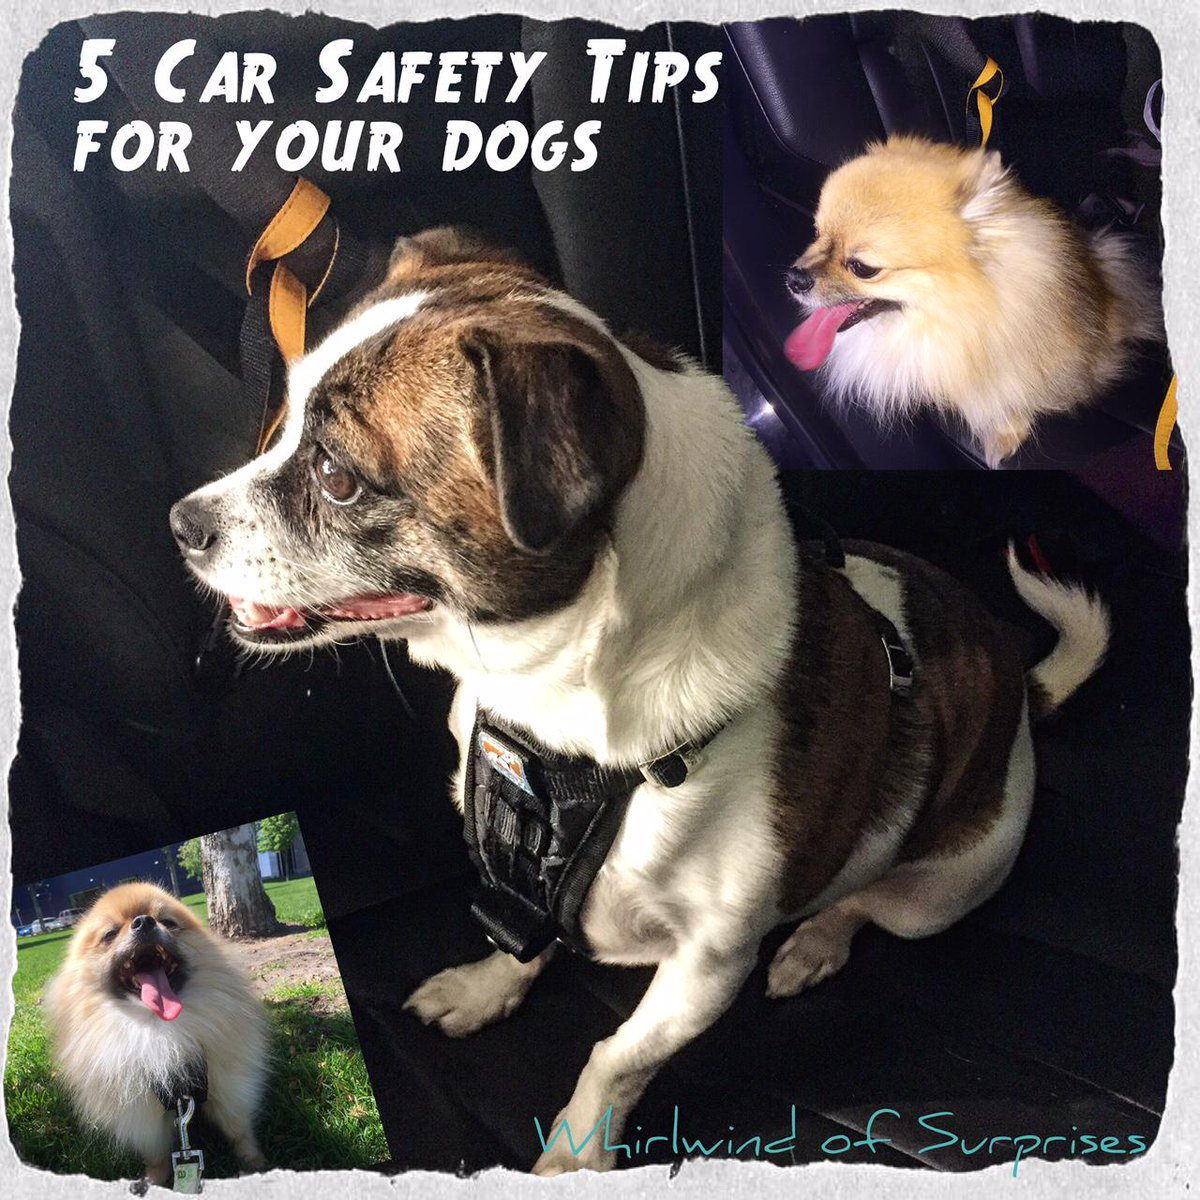 Car safety tips for your dogs